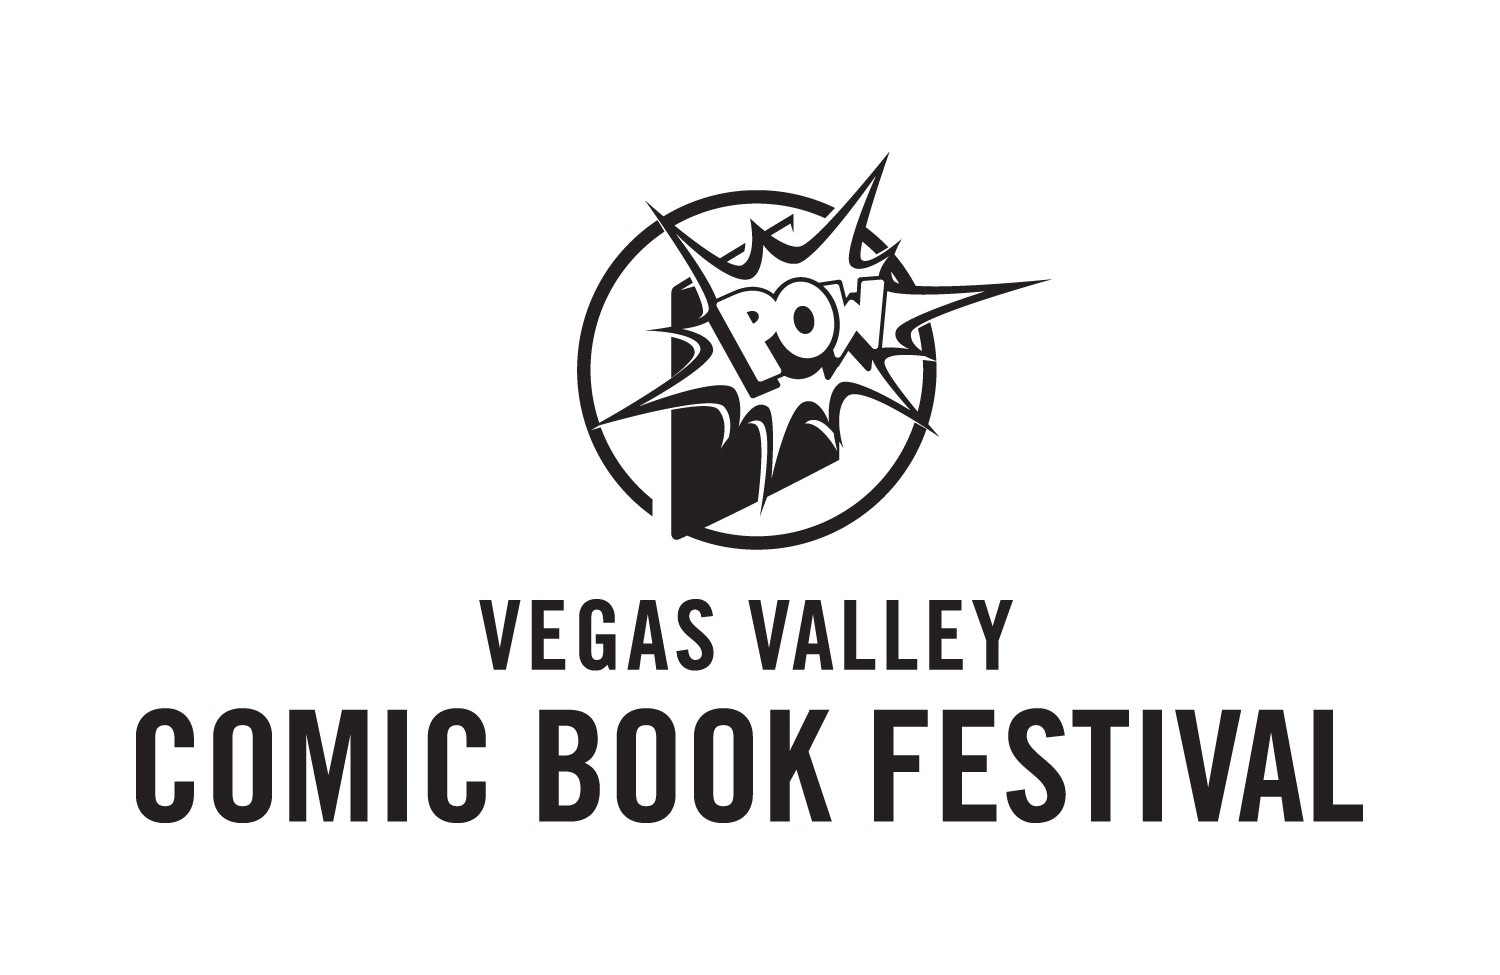 Vegas Valley Comic Book Festival Logo